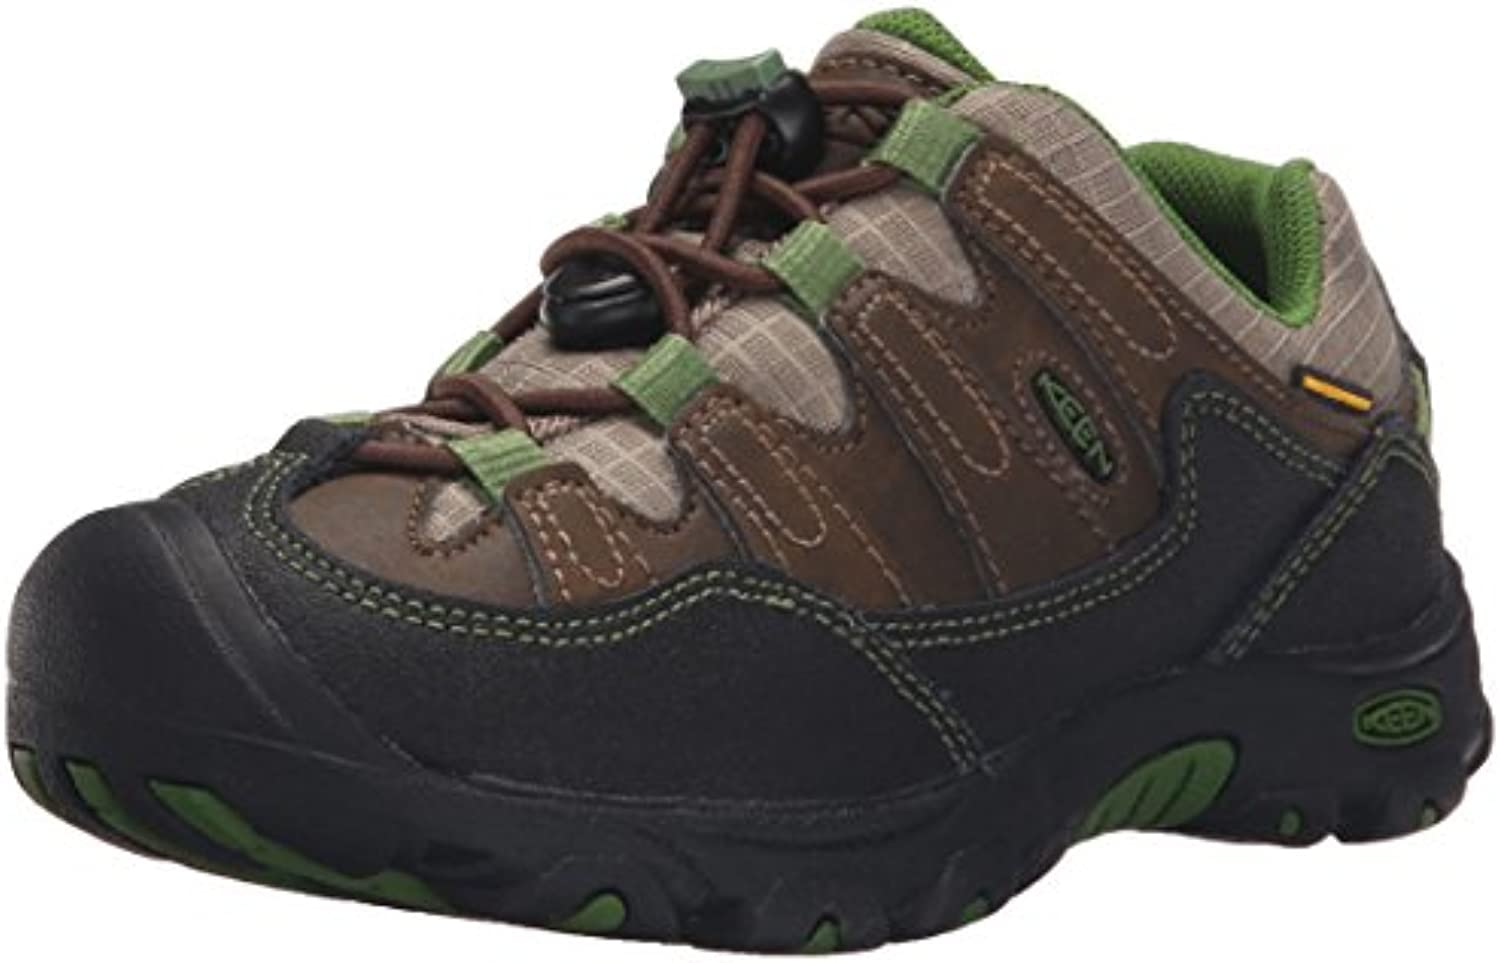 Keen Pagosa Low WP Wide Shoe Toddler/Little Kid